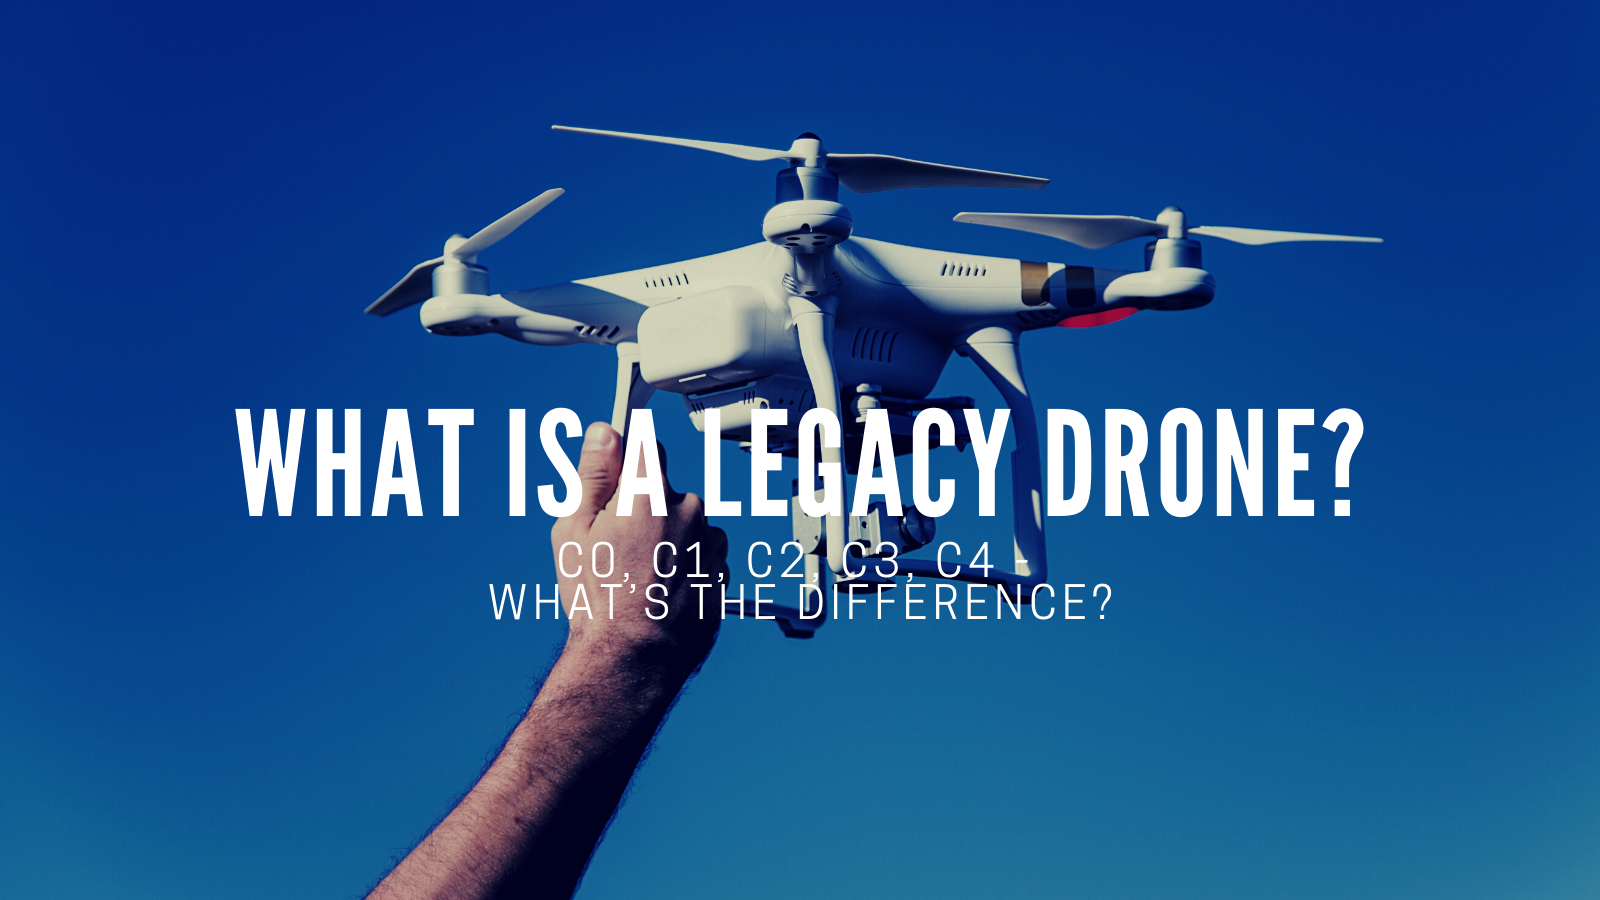 What Is A Legacy Drone?